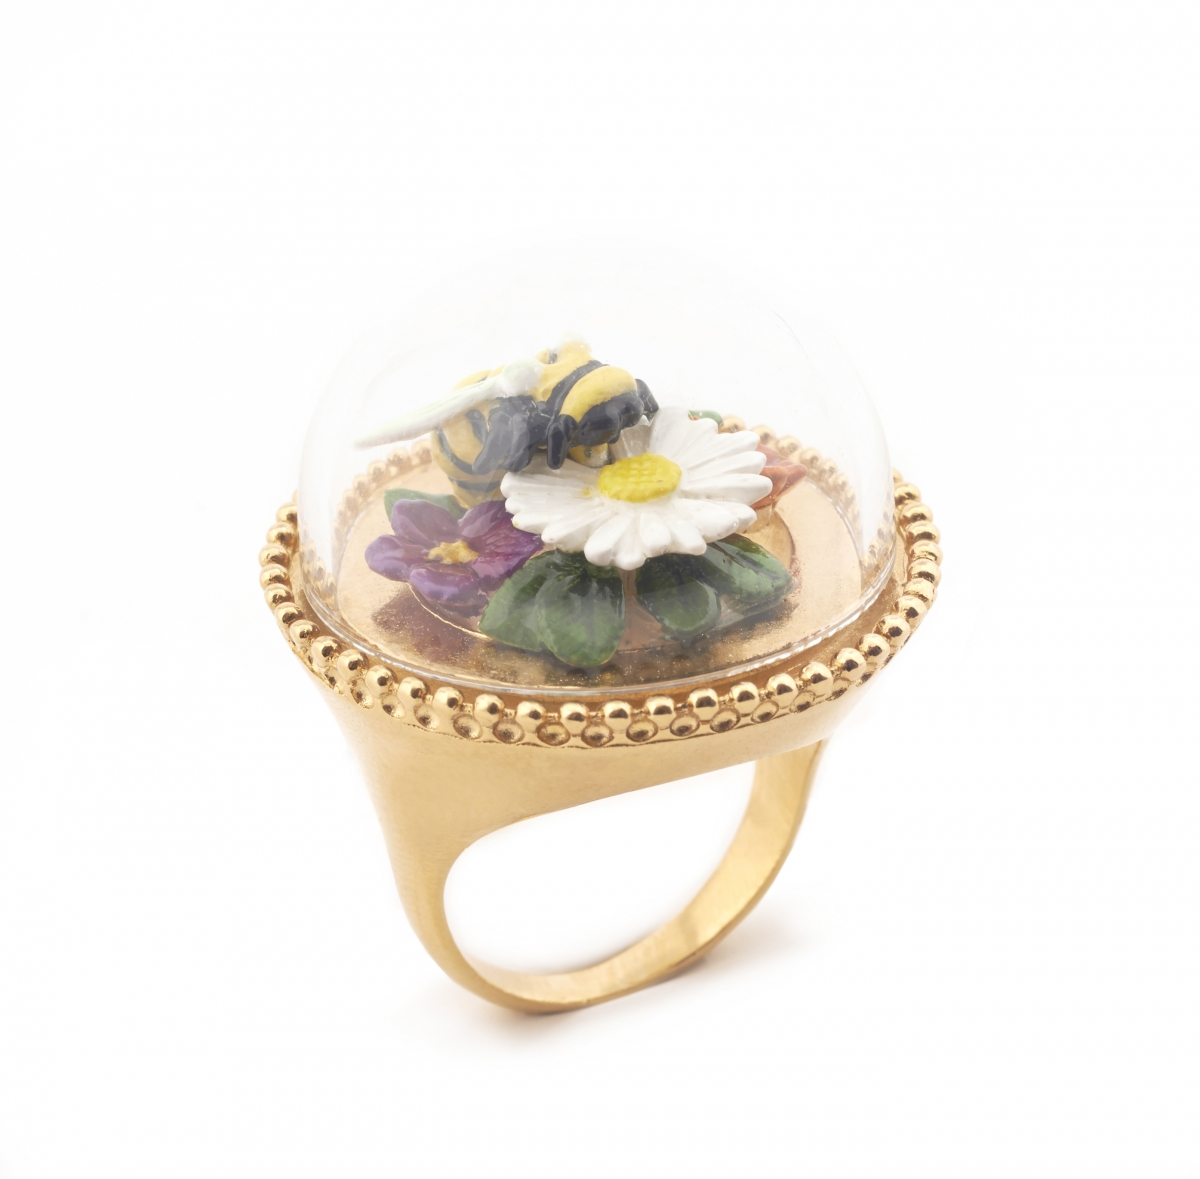 Curios Bee & Floral Ring - Large Size Only